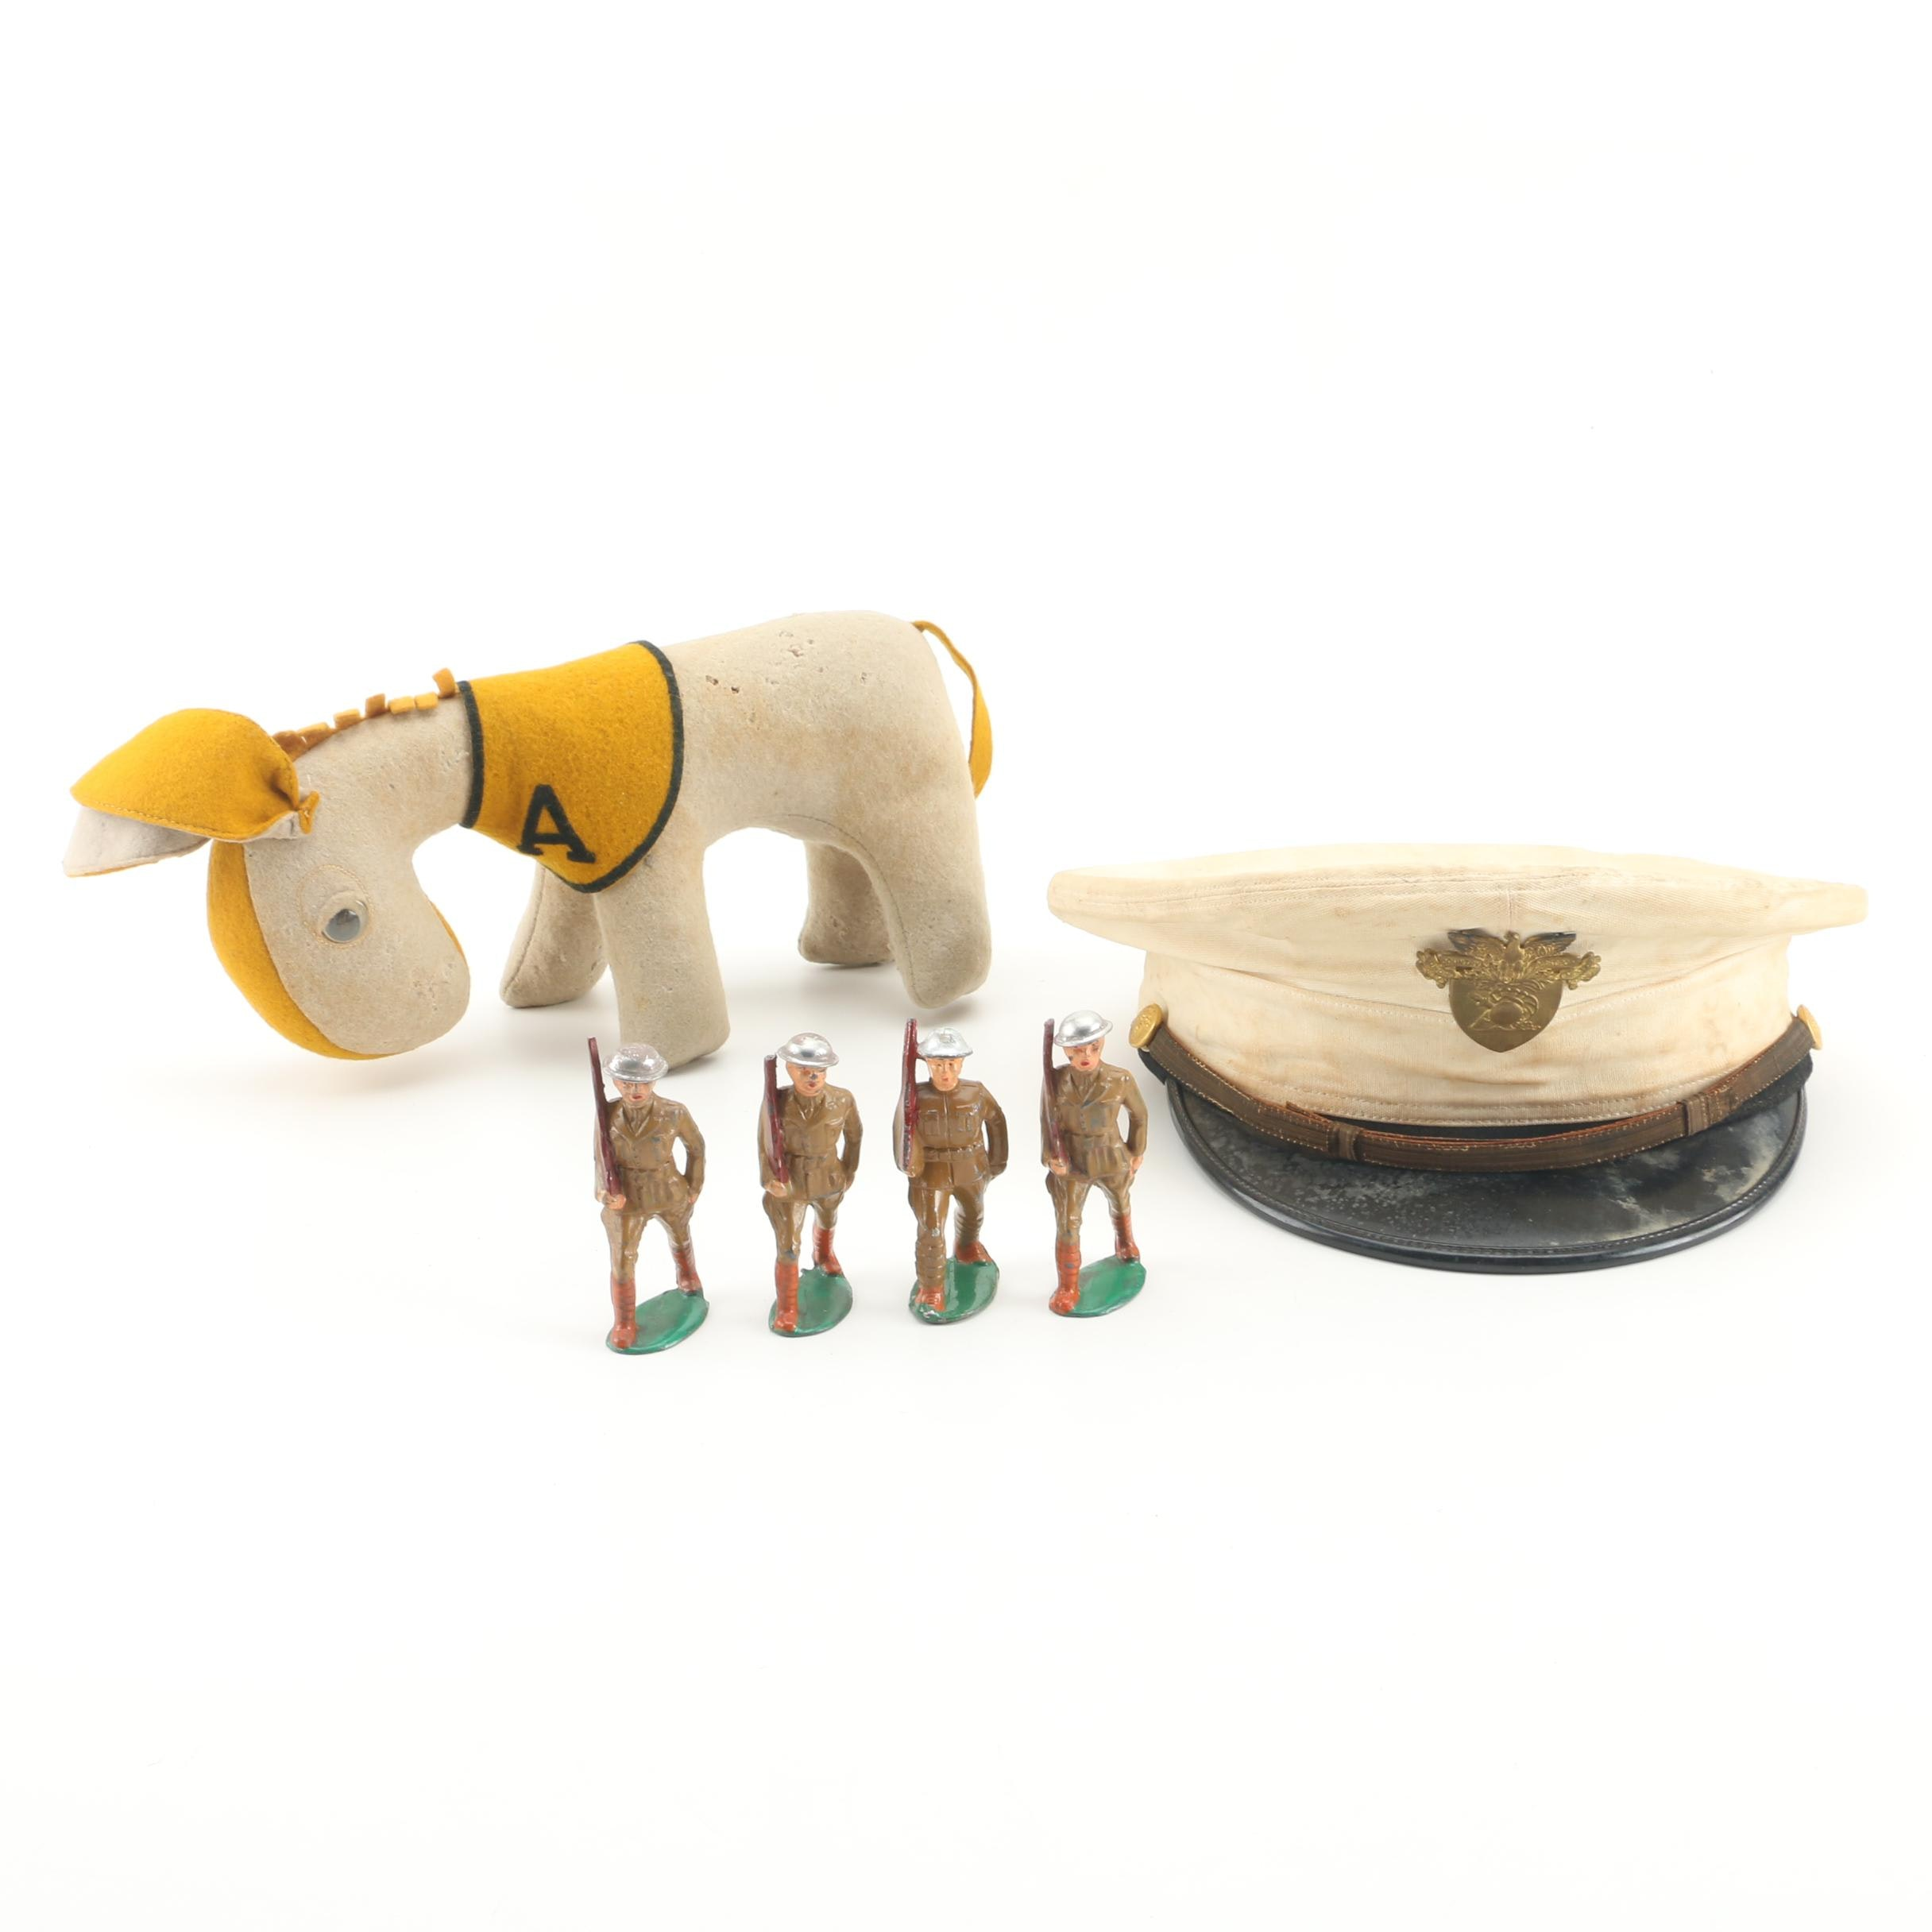 U.S.M.A. West Point Cadet Dress Hat And Army Mule Mascot With Tin Soldiers